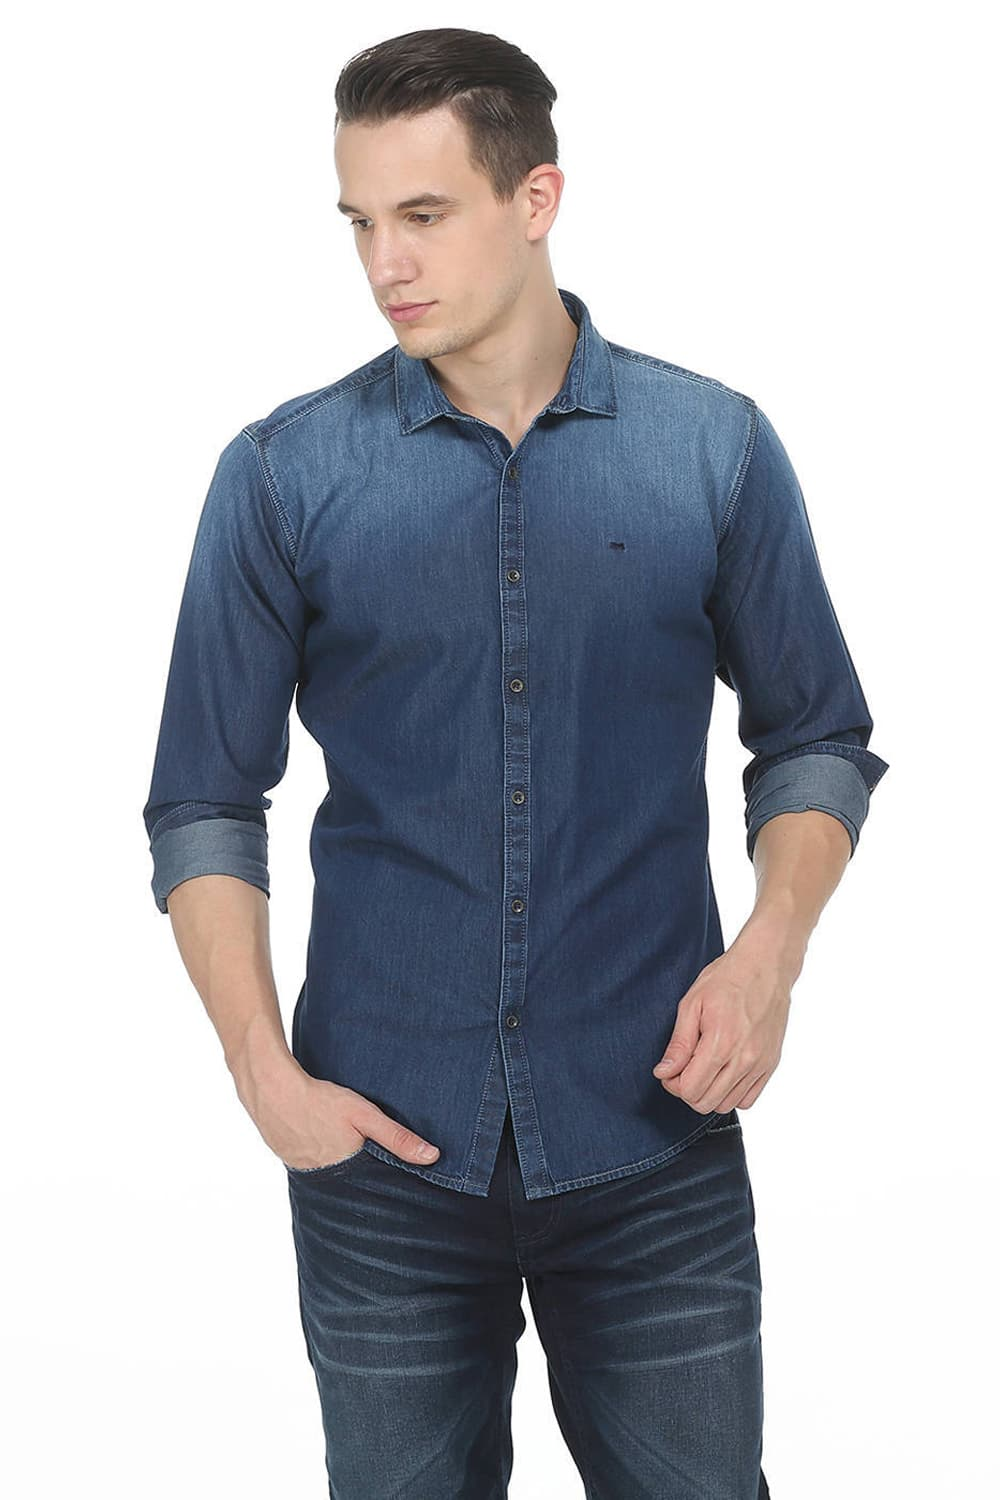 what color shirt goes with blue jeans